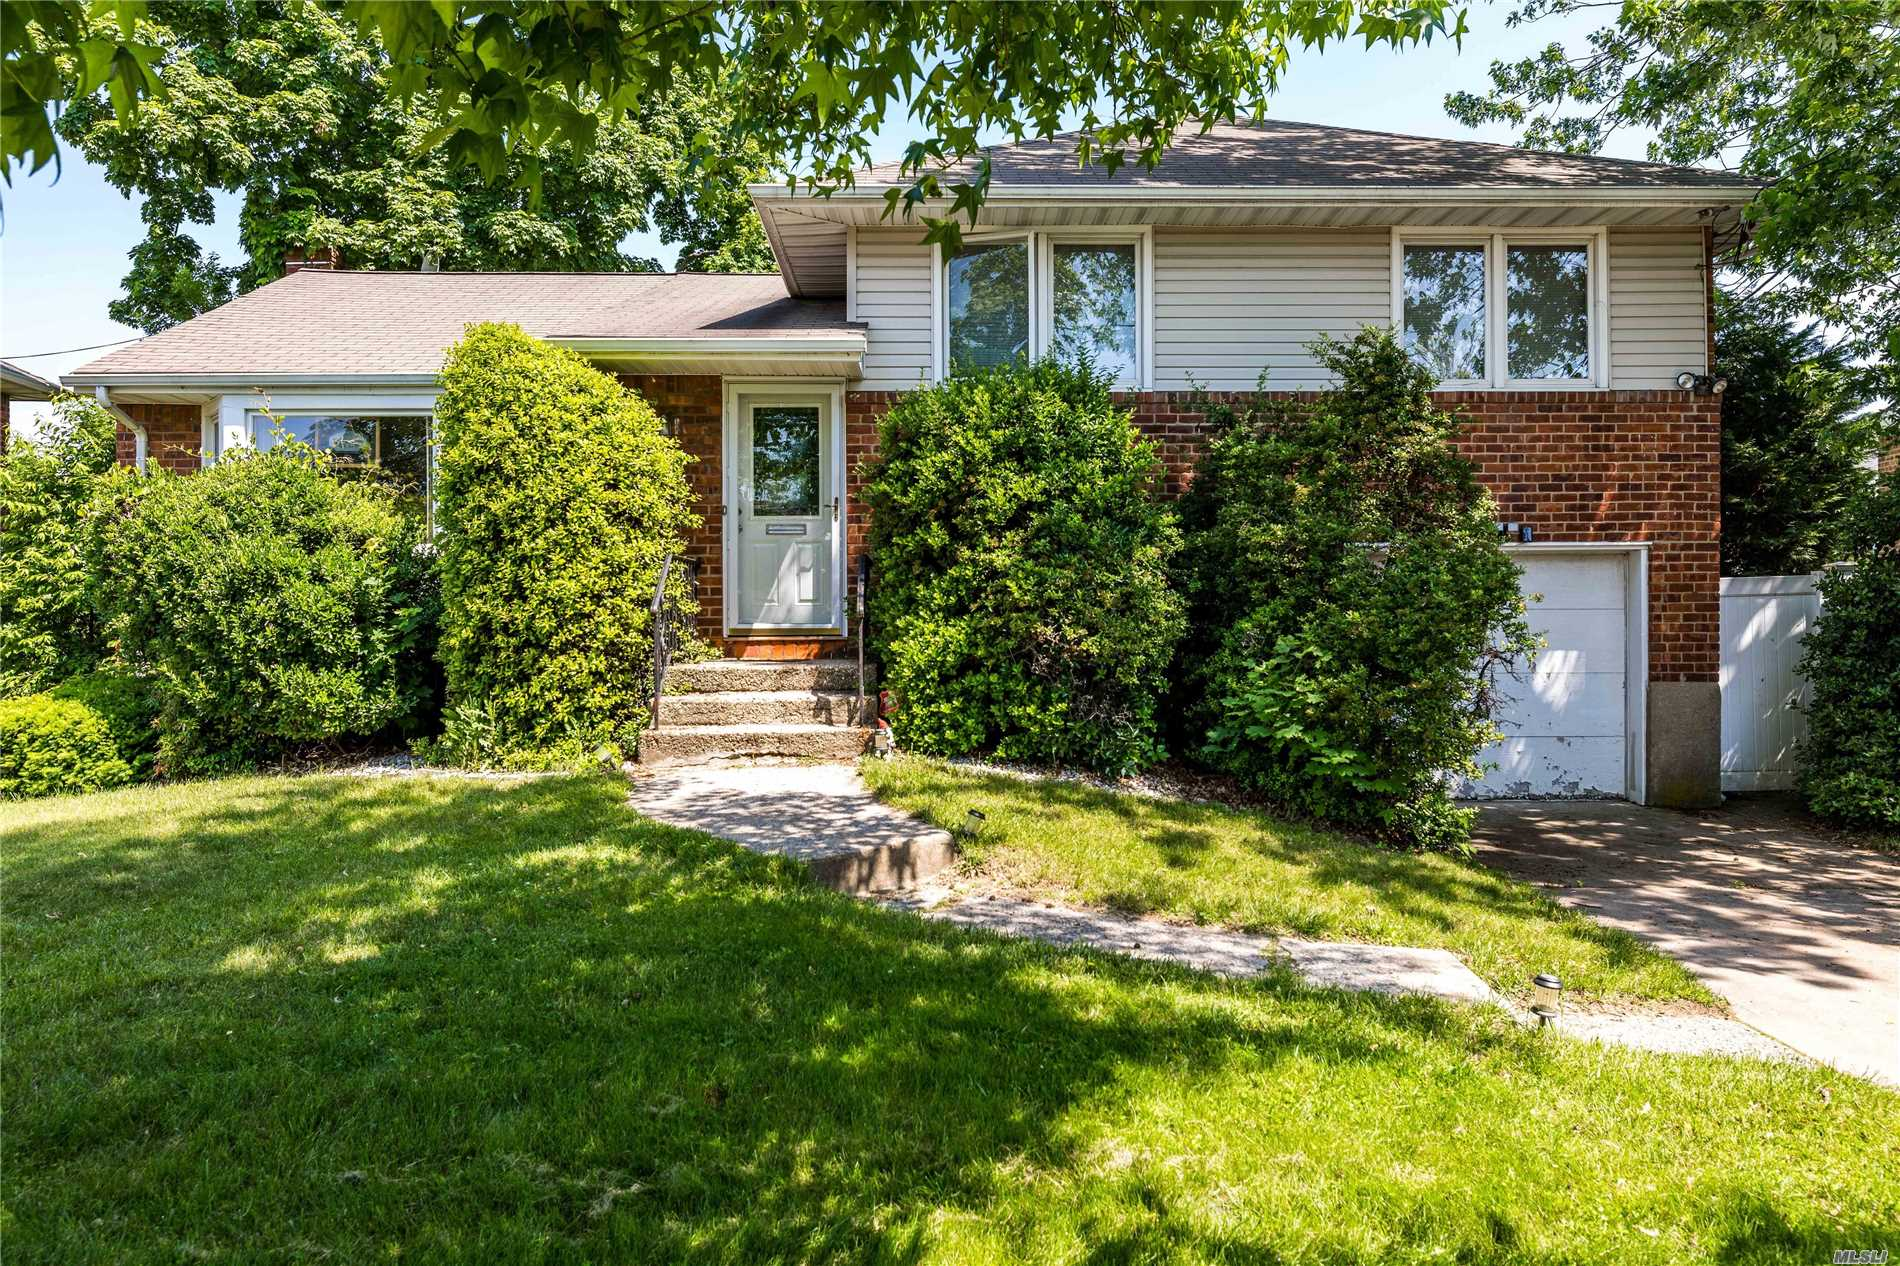 Split Level Home On Low Traffic Street. Close To Shopping And Dining, As Well As Transportation